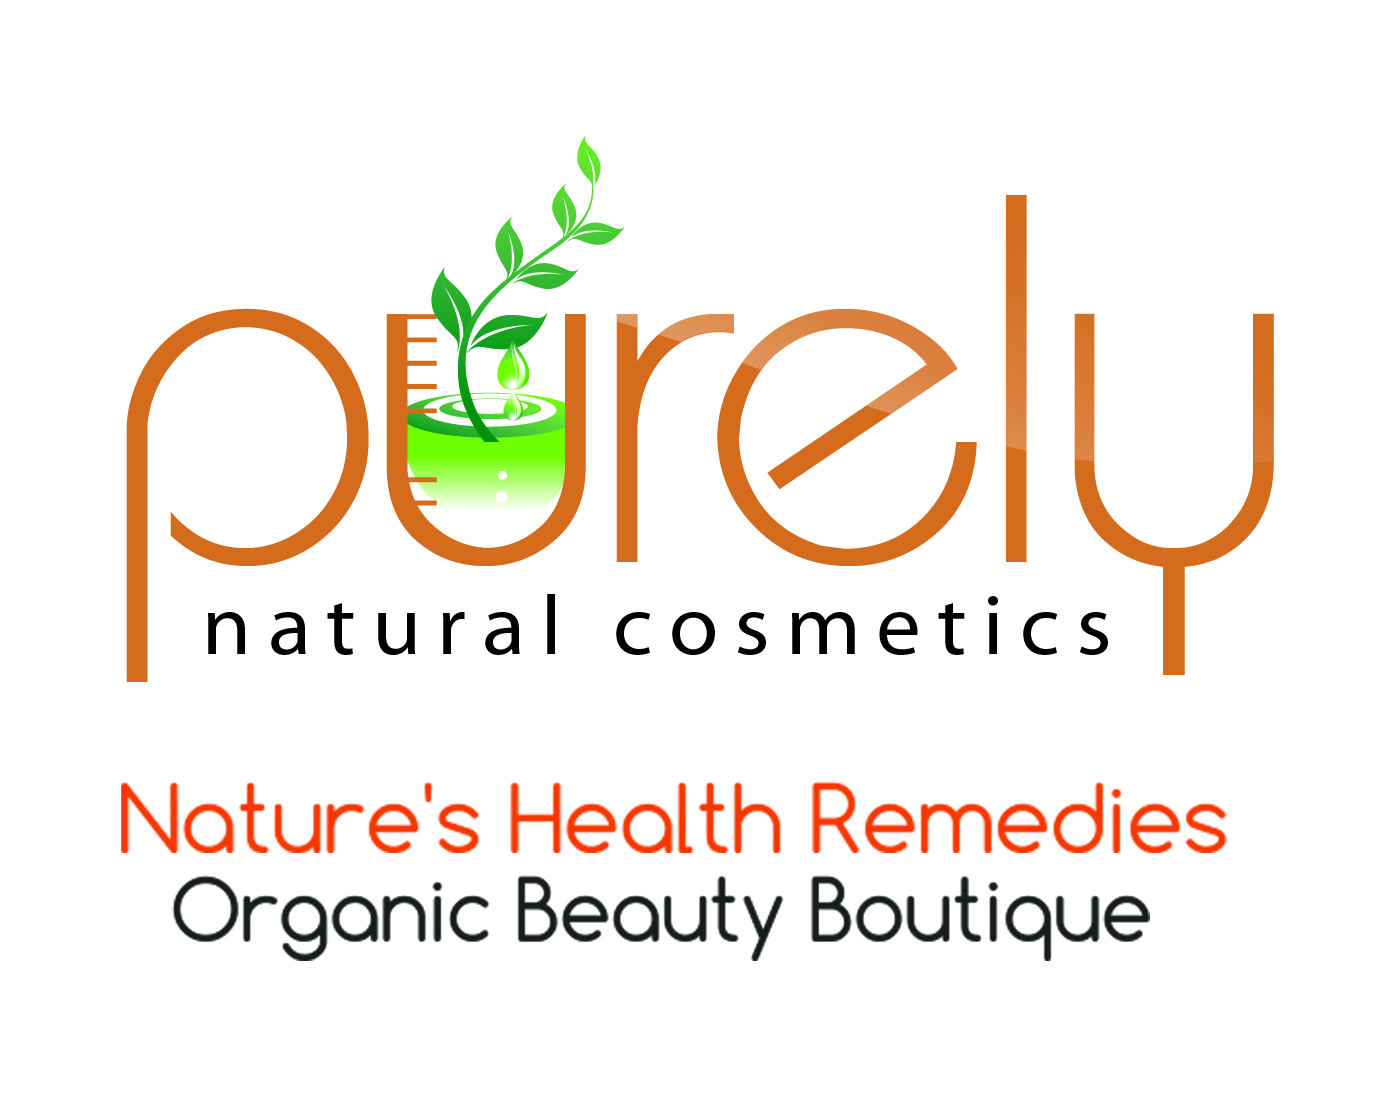 Purely Natural Cosmetics